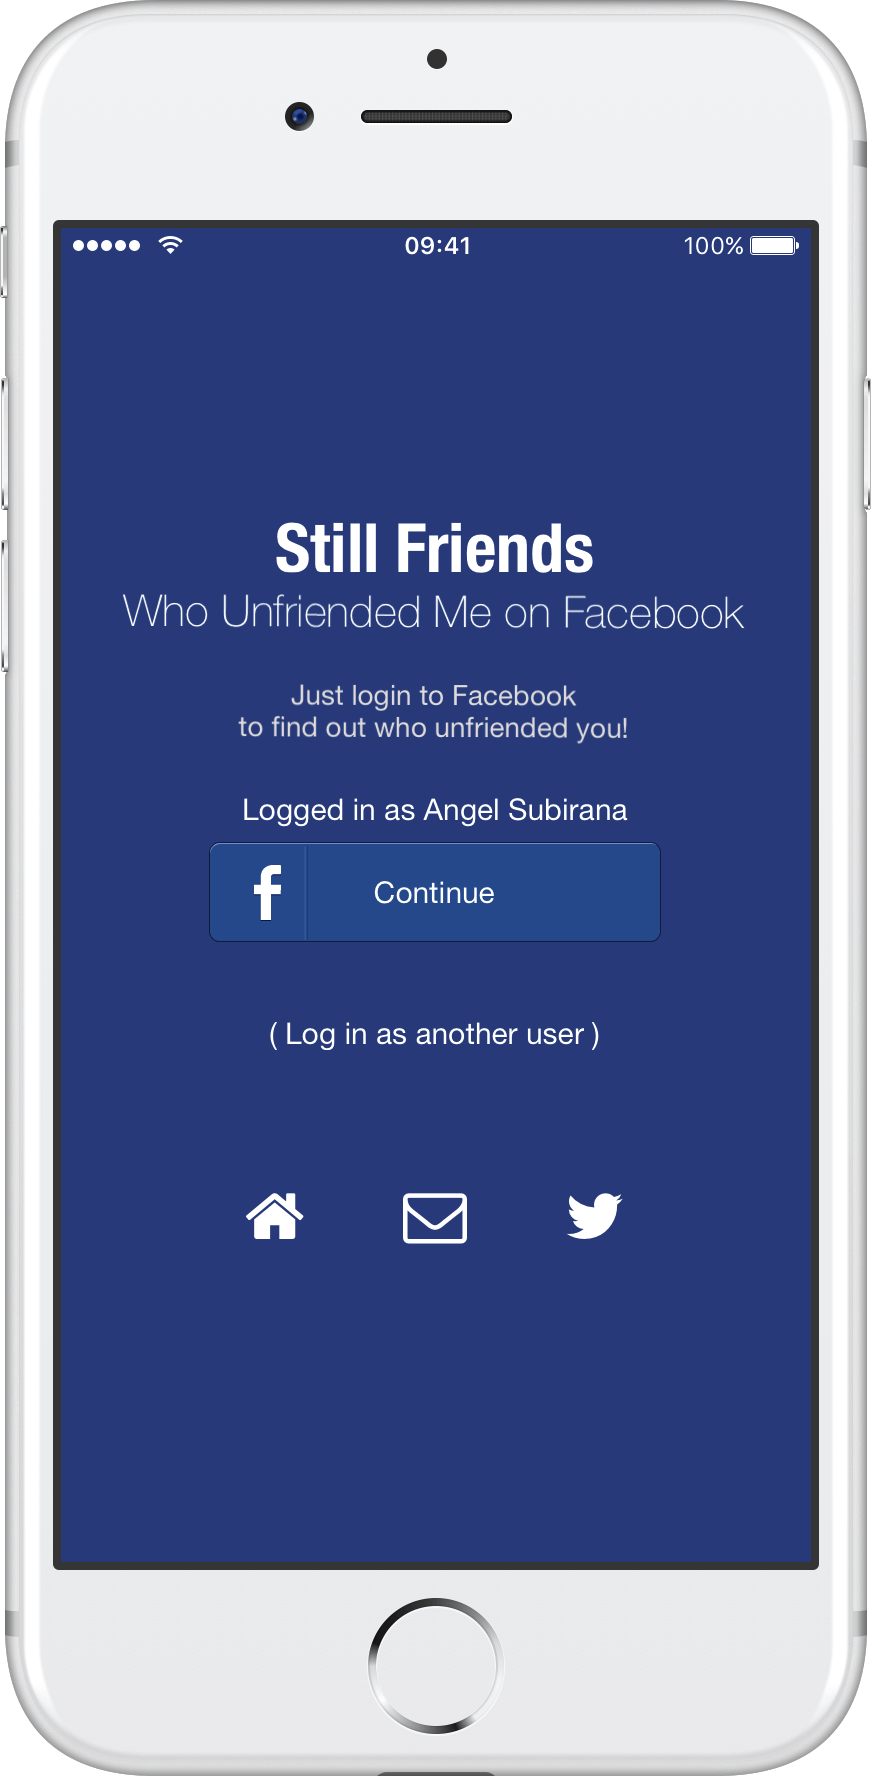 Login to Facebook to find who deleted you